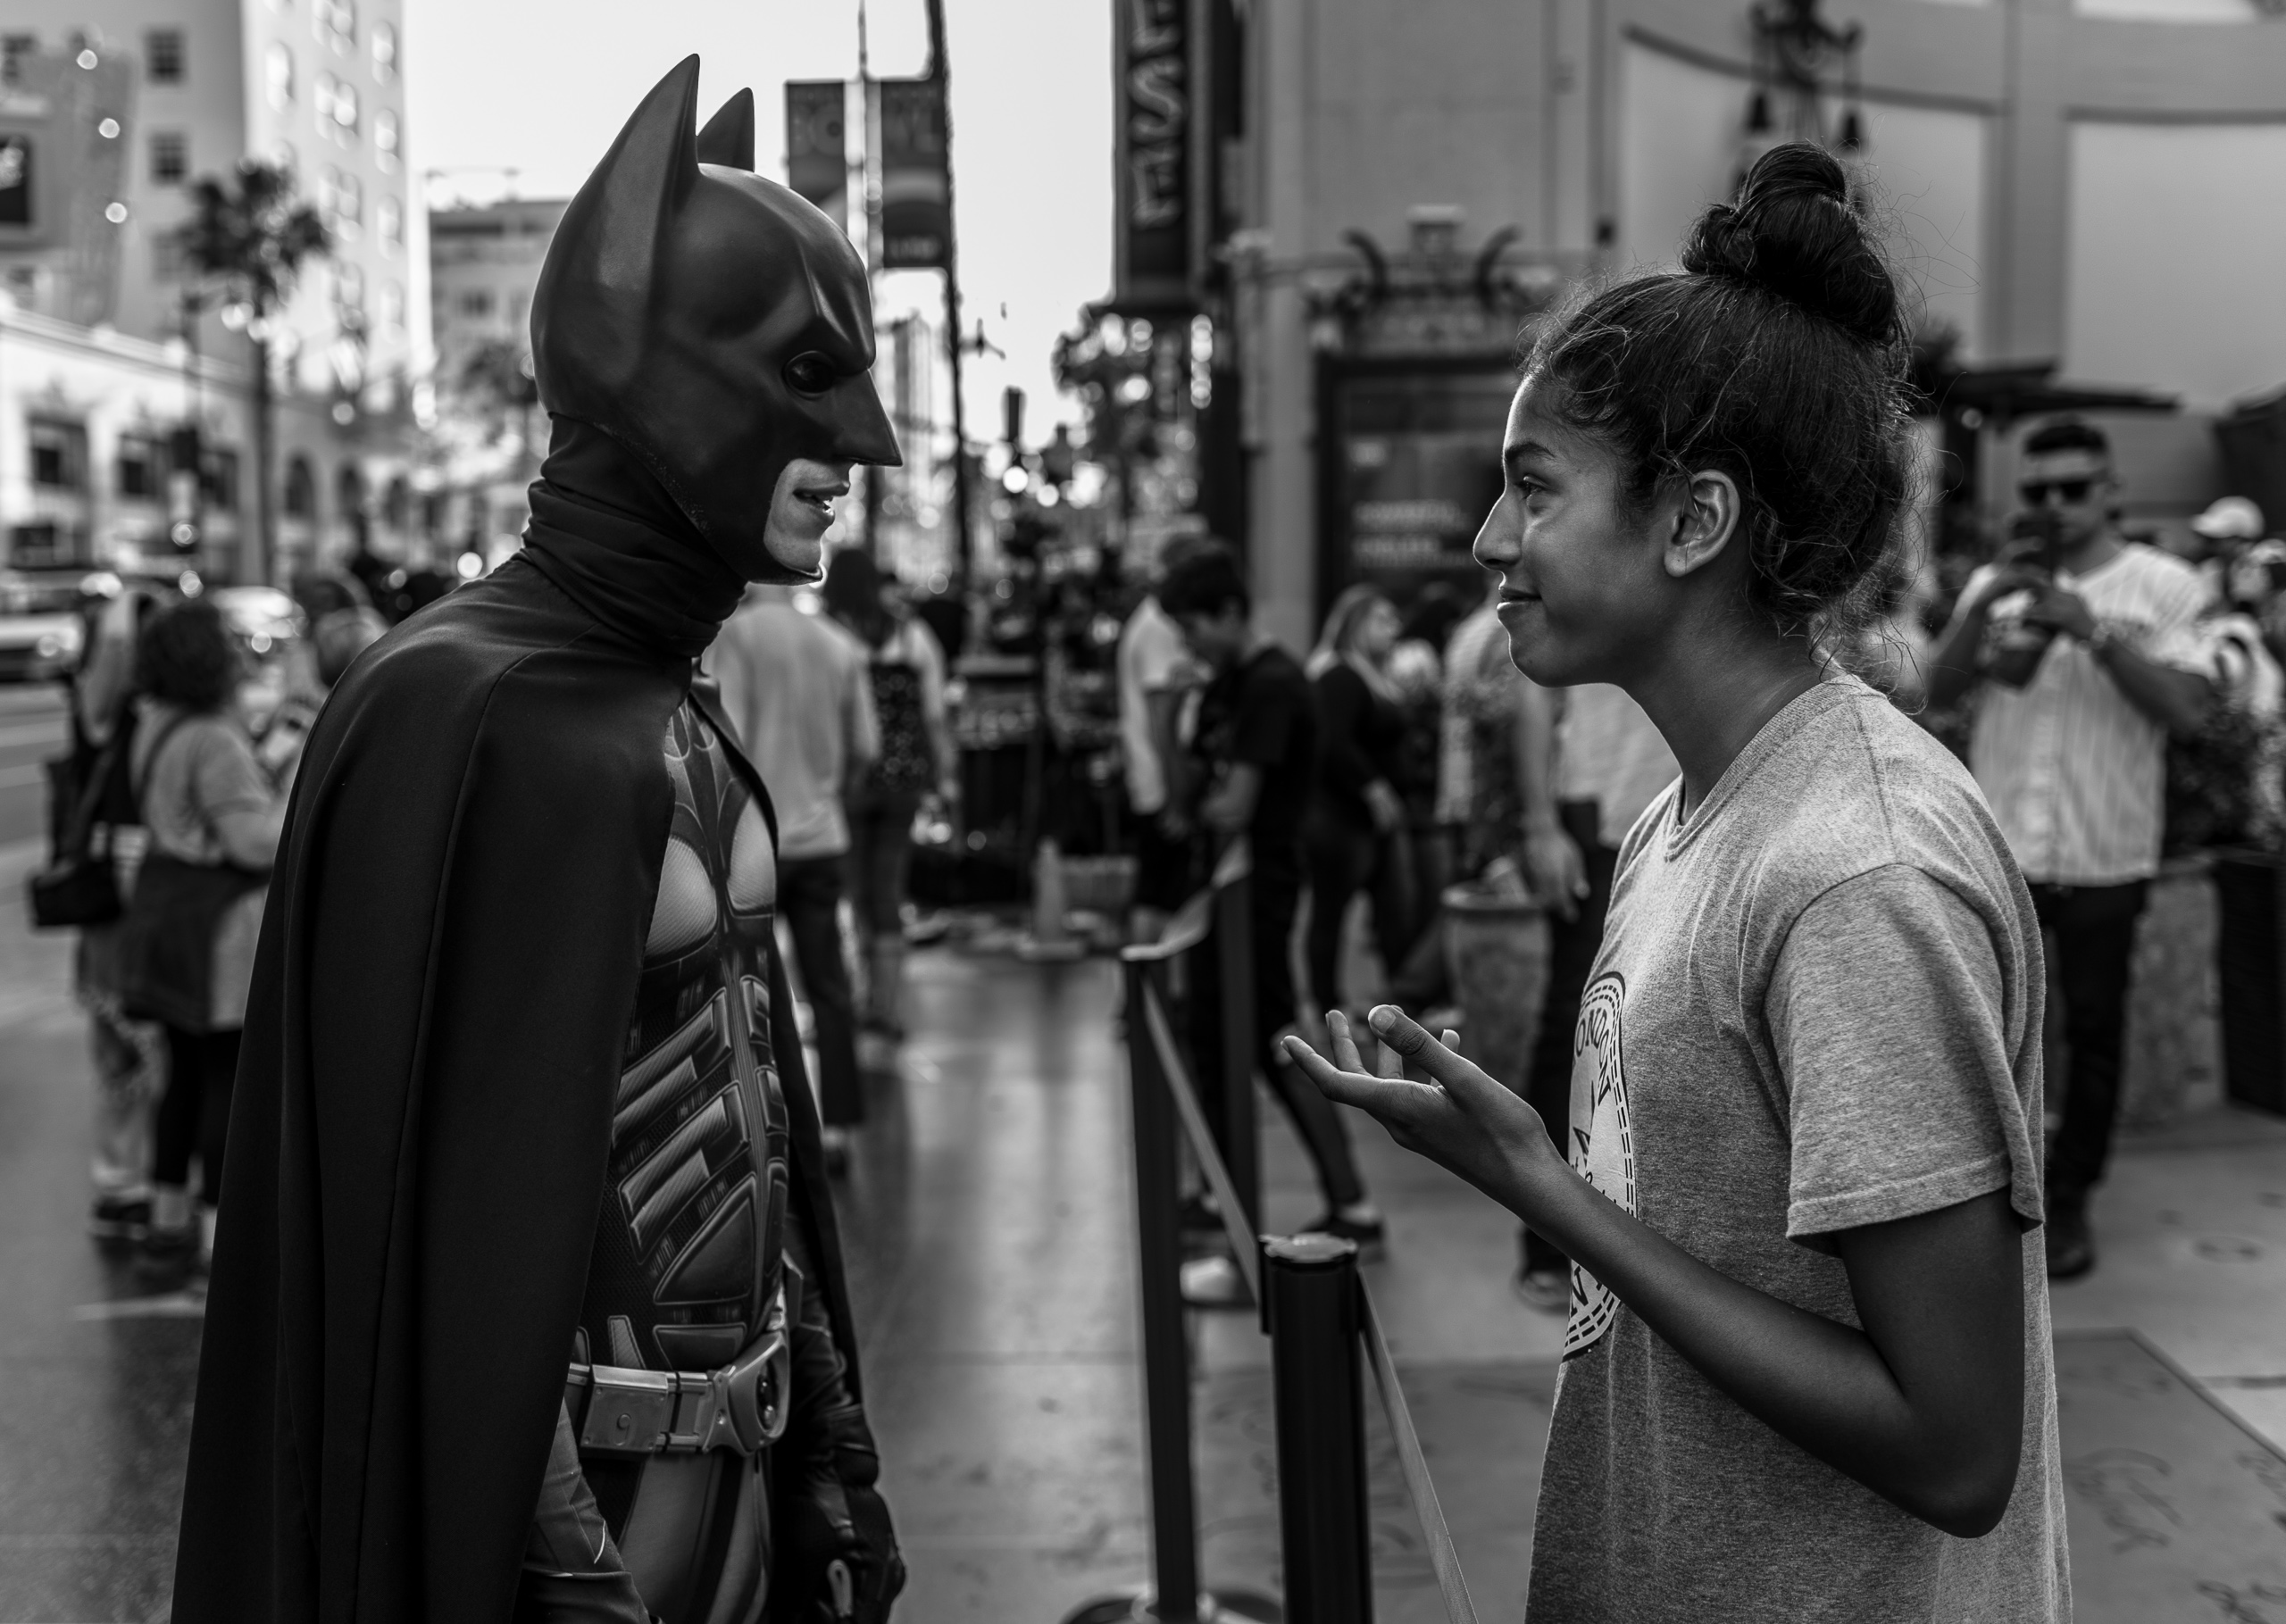 a young woman has an engaging conversation with a guy in a Batman costume on Hollywood Blvd.